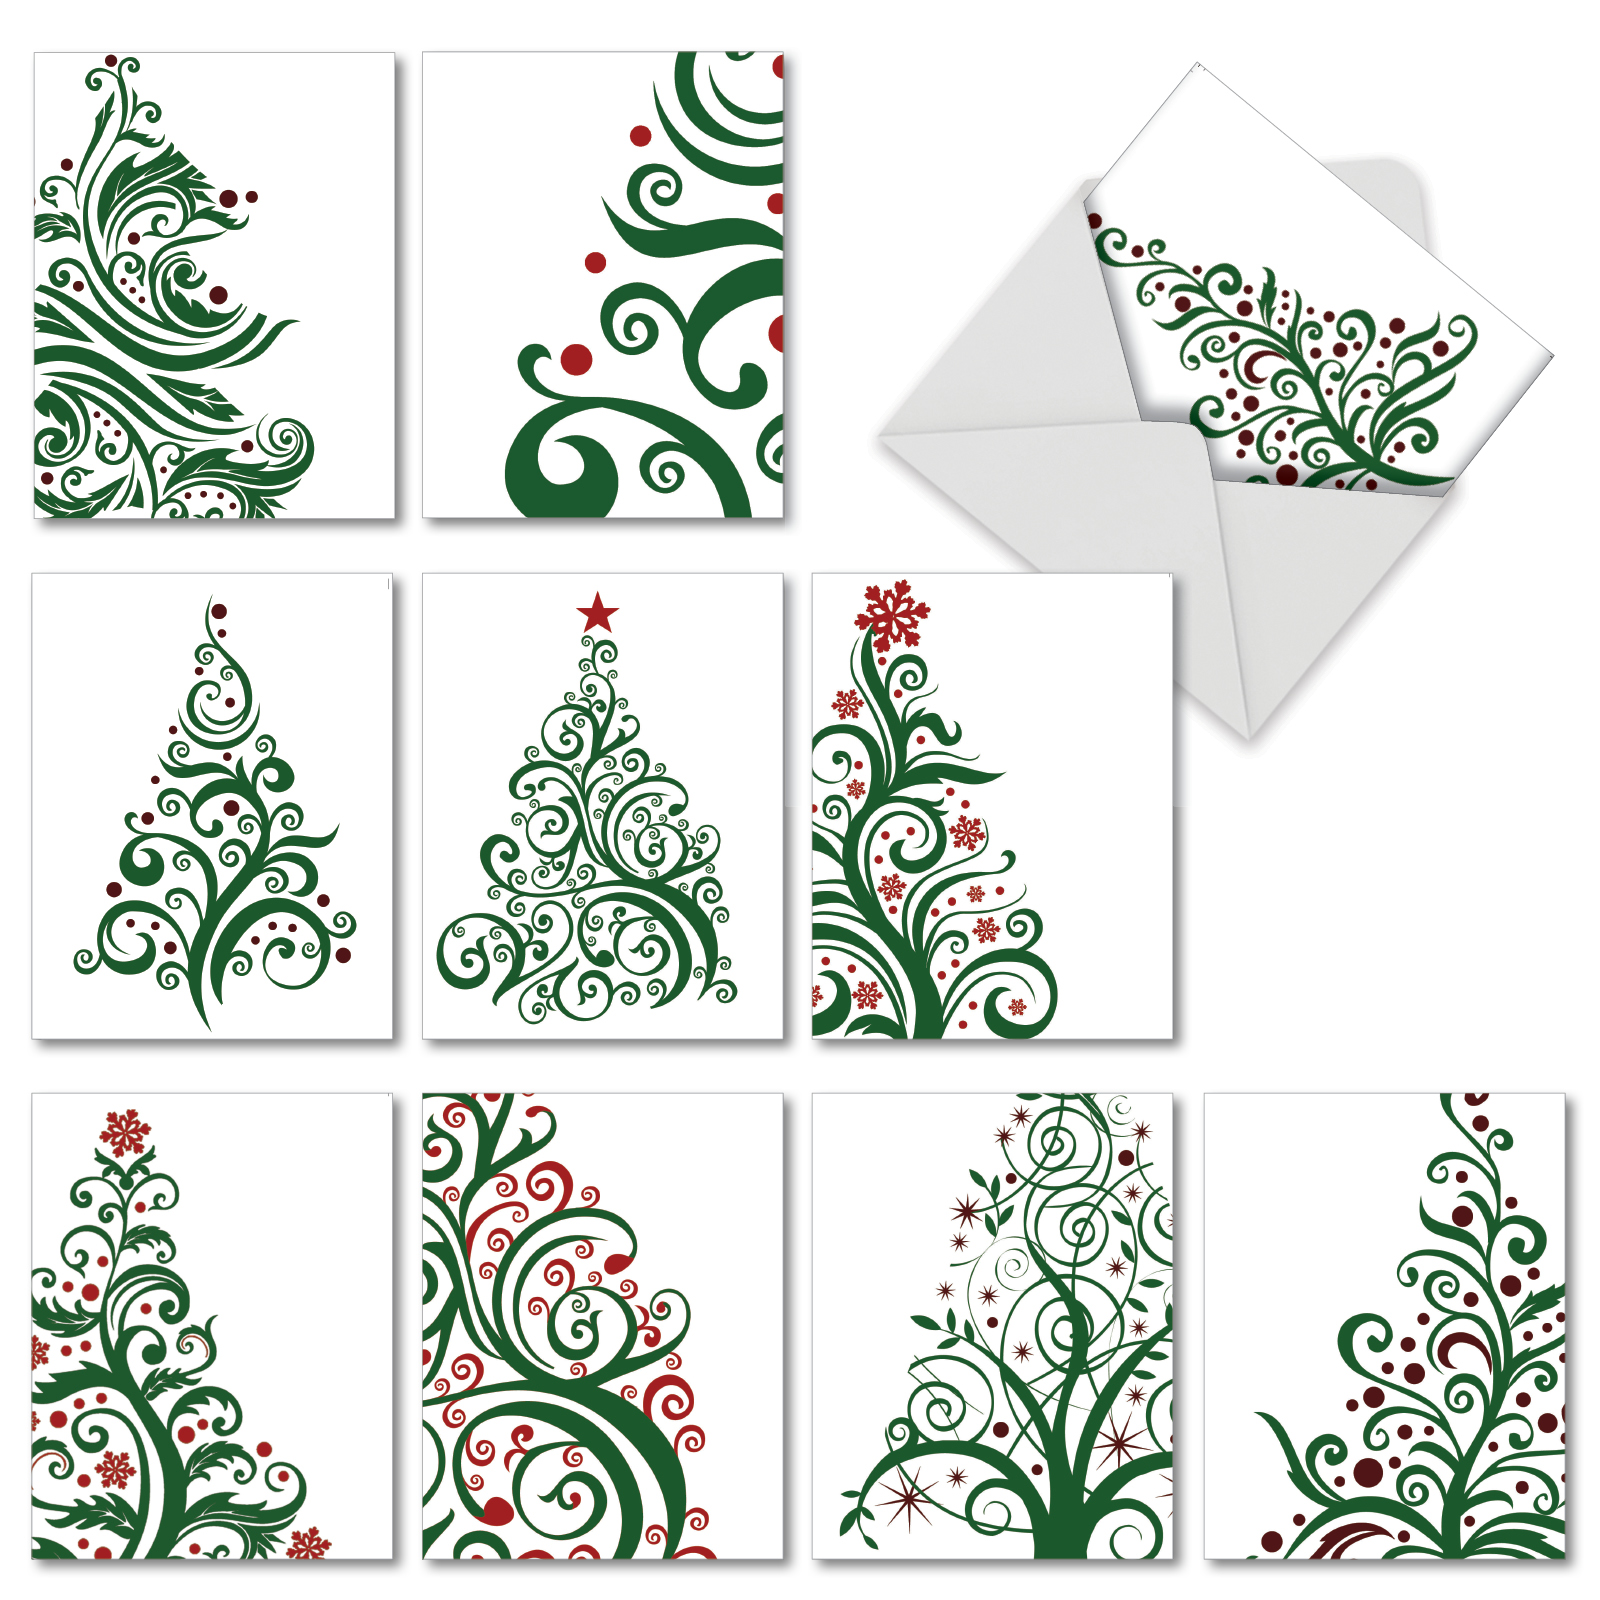 M5019XTG Just Fir You: 10 Assorted Christmas Thank You Note Cards with Envelopes, The Best Card Company